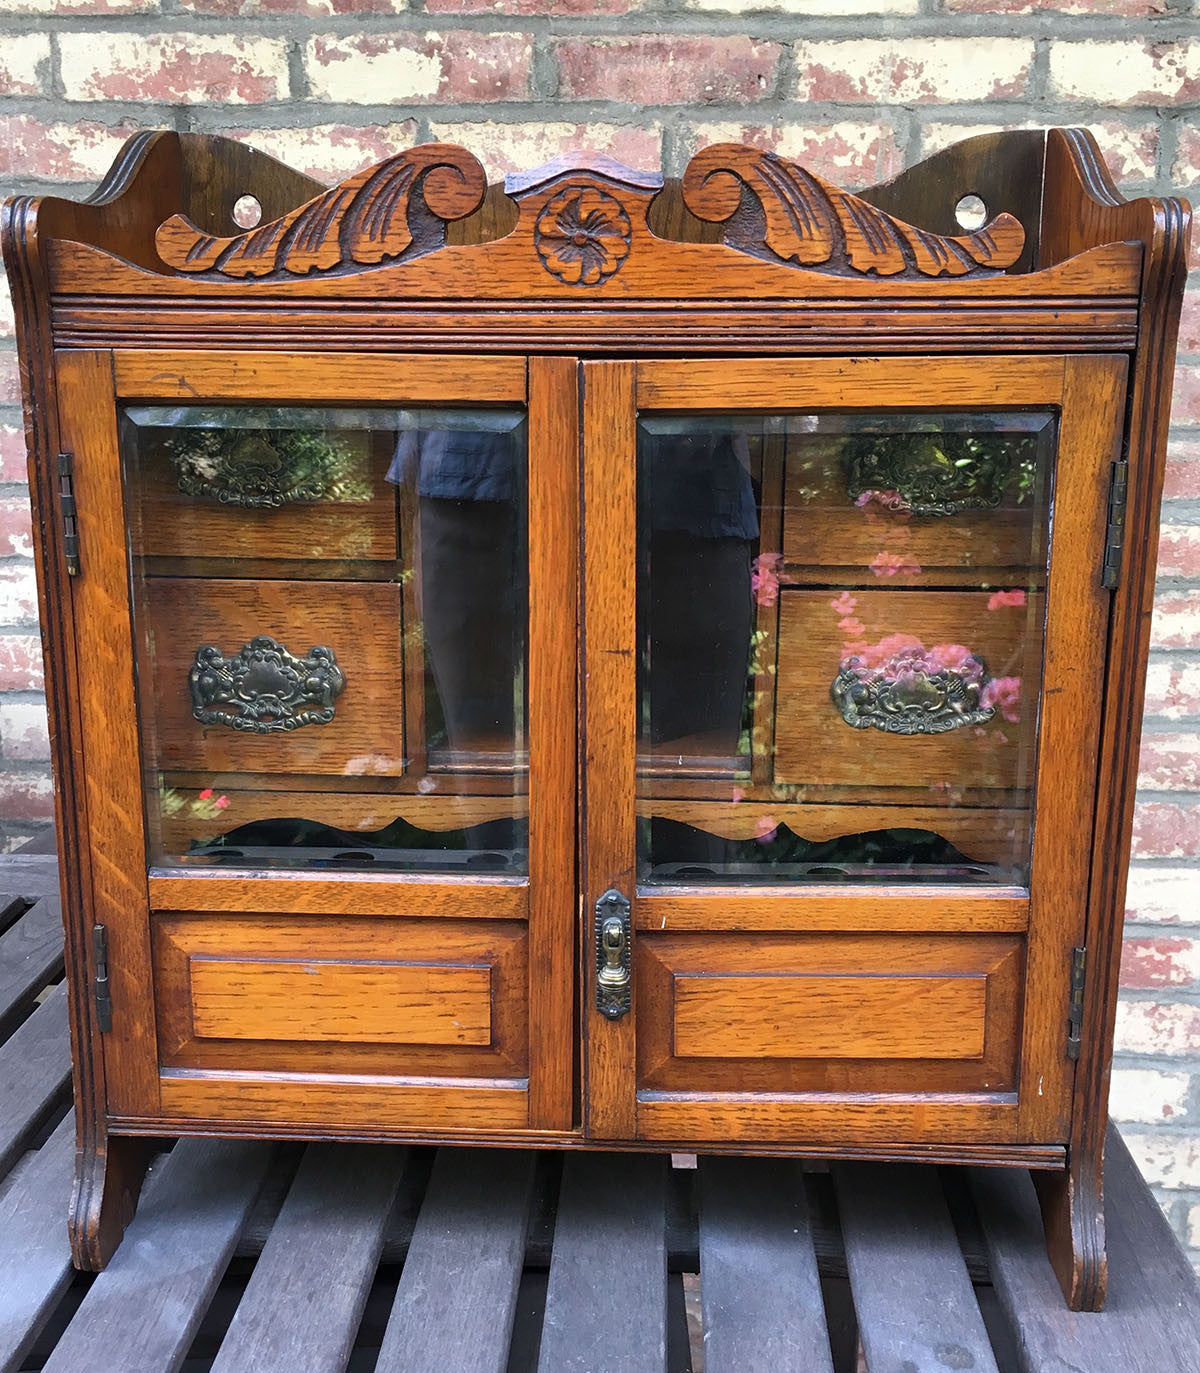 SOLD Victorian Oak Table Top Tobacco Cabinet Chest W Duroglass Humidor